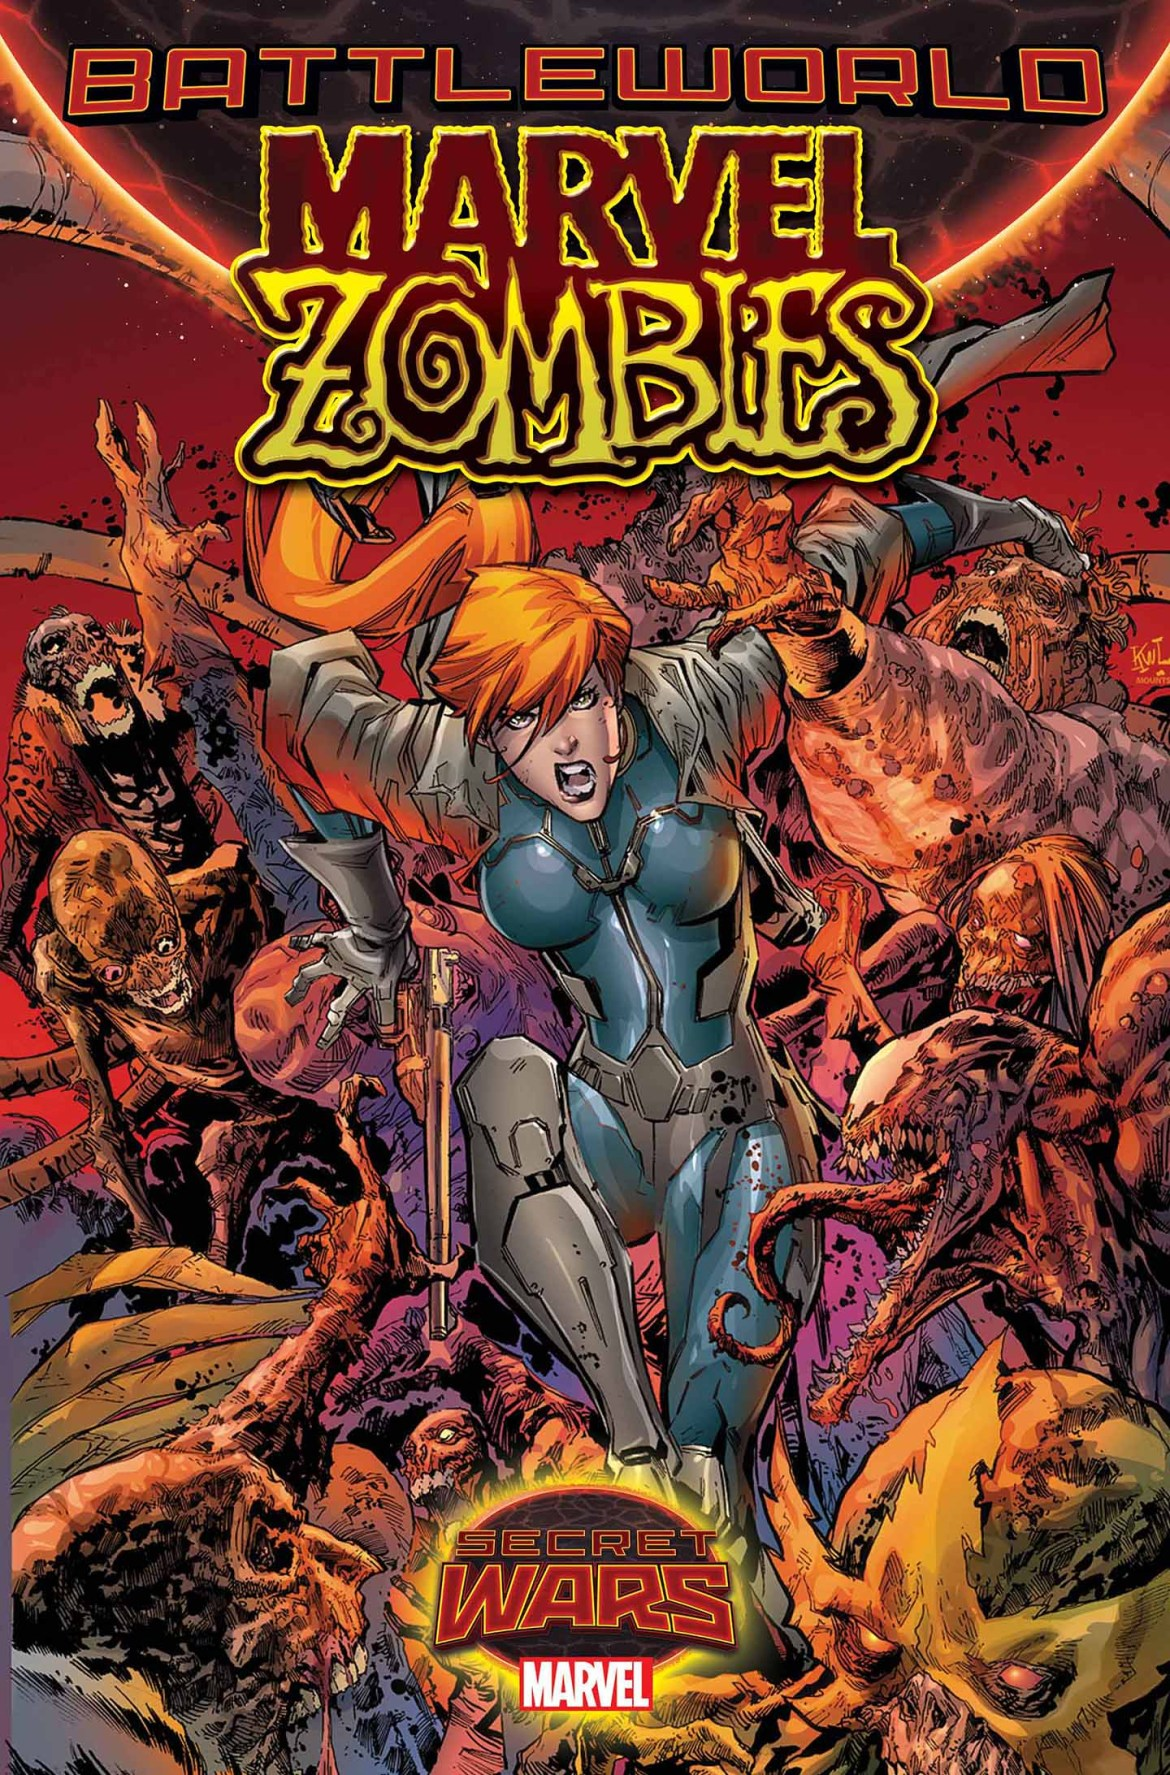 Marvel_Zombies_1_Cover One woman battles MARVEL ZOMBIES #1 across BATTLEWORLD